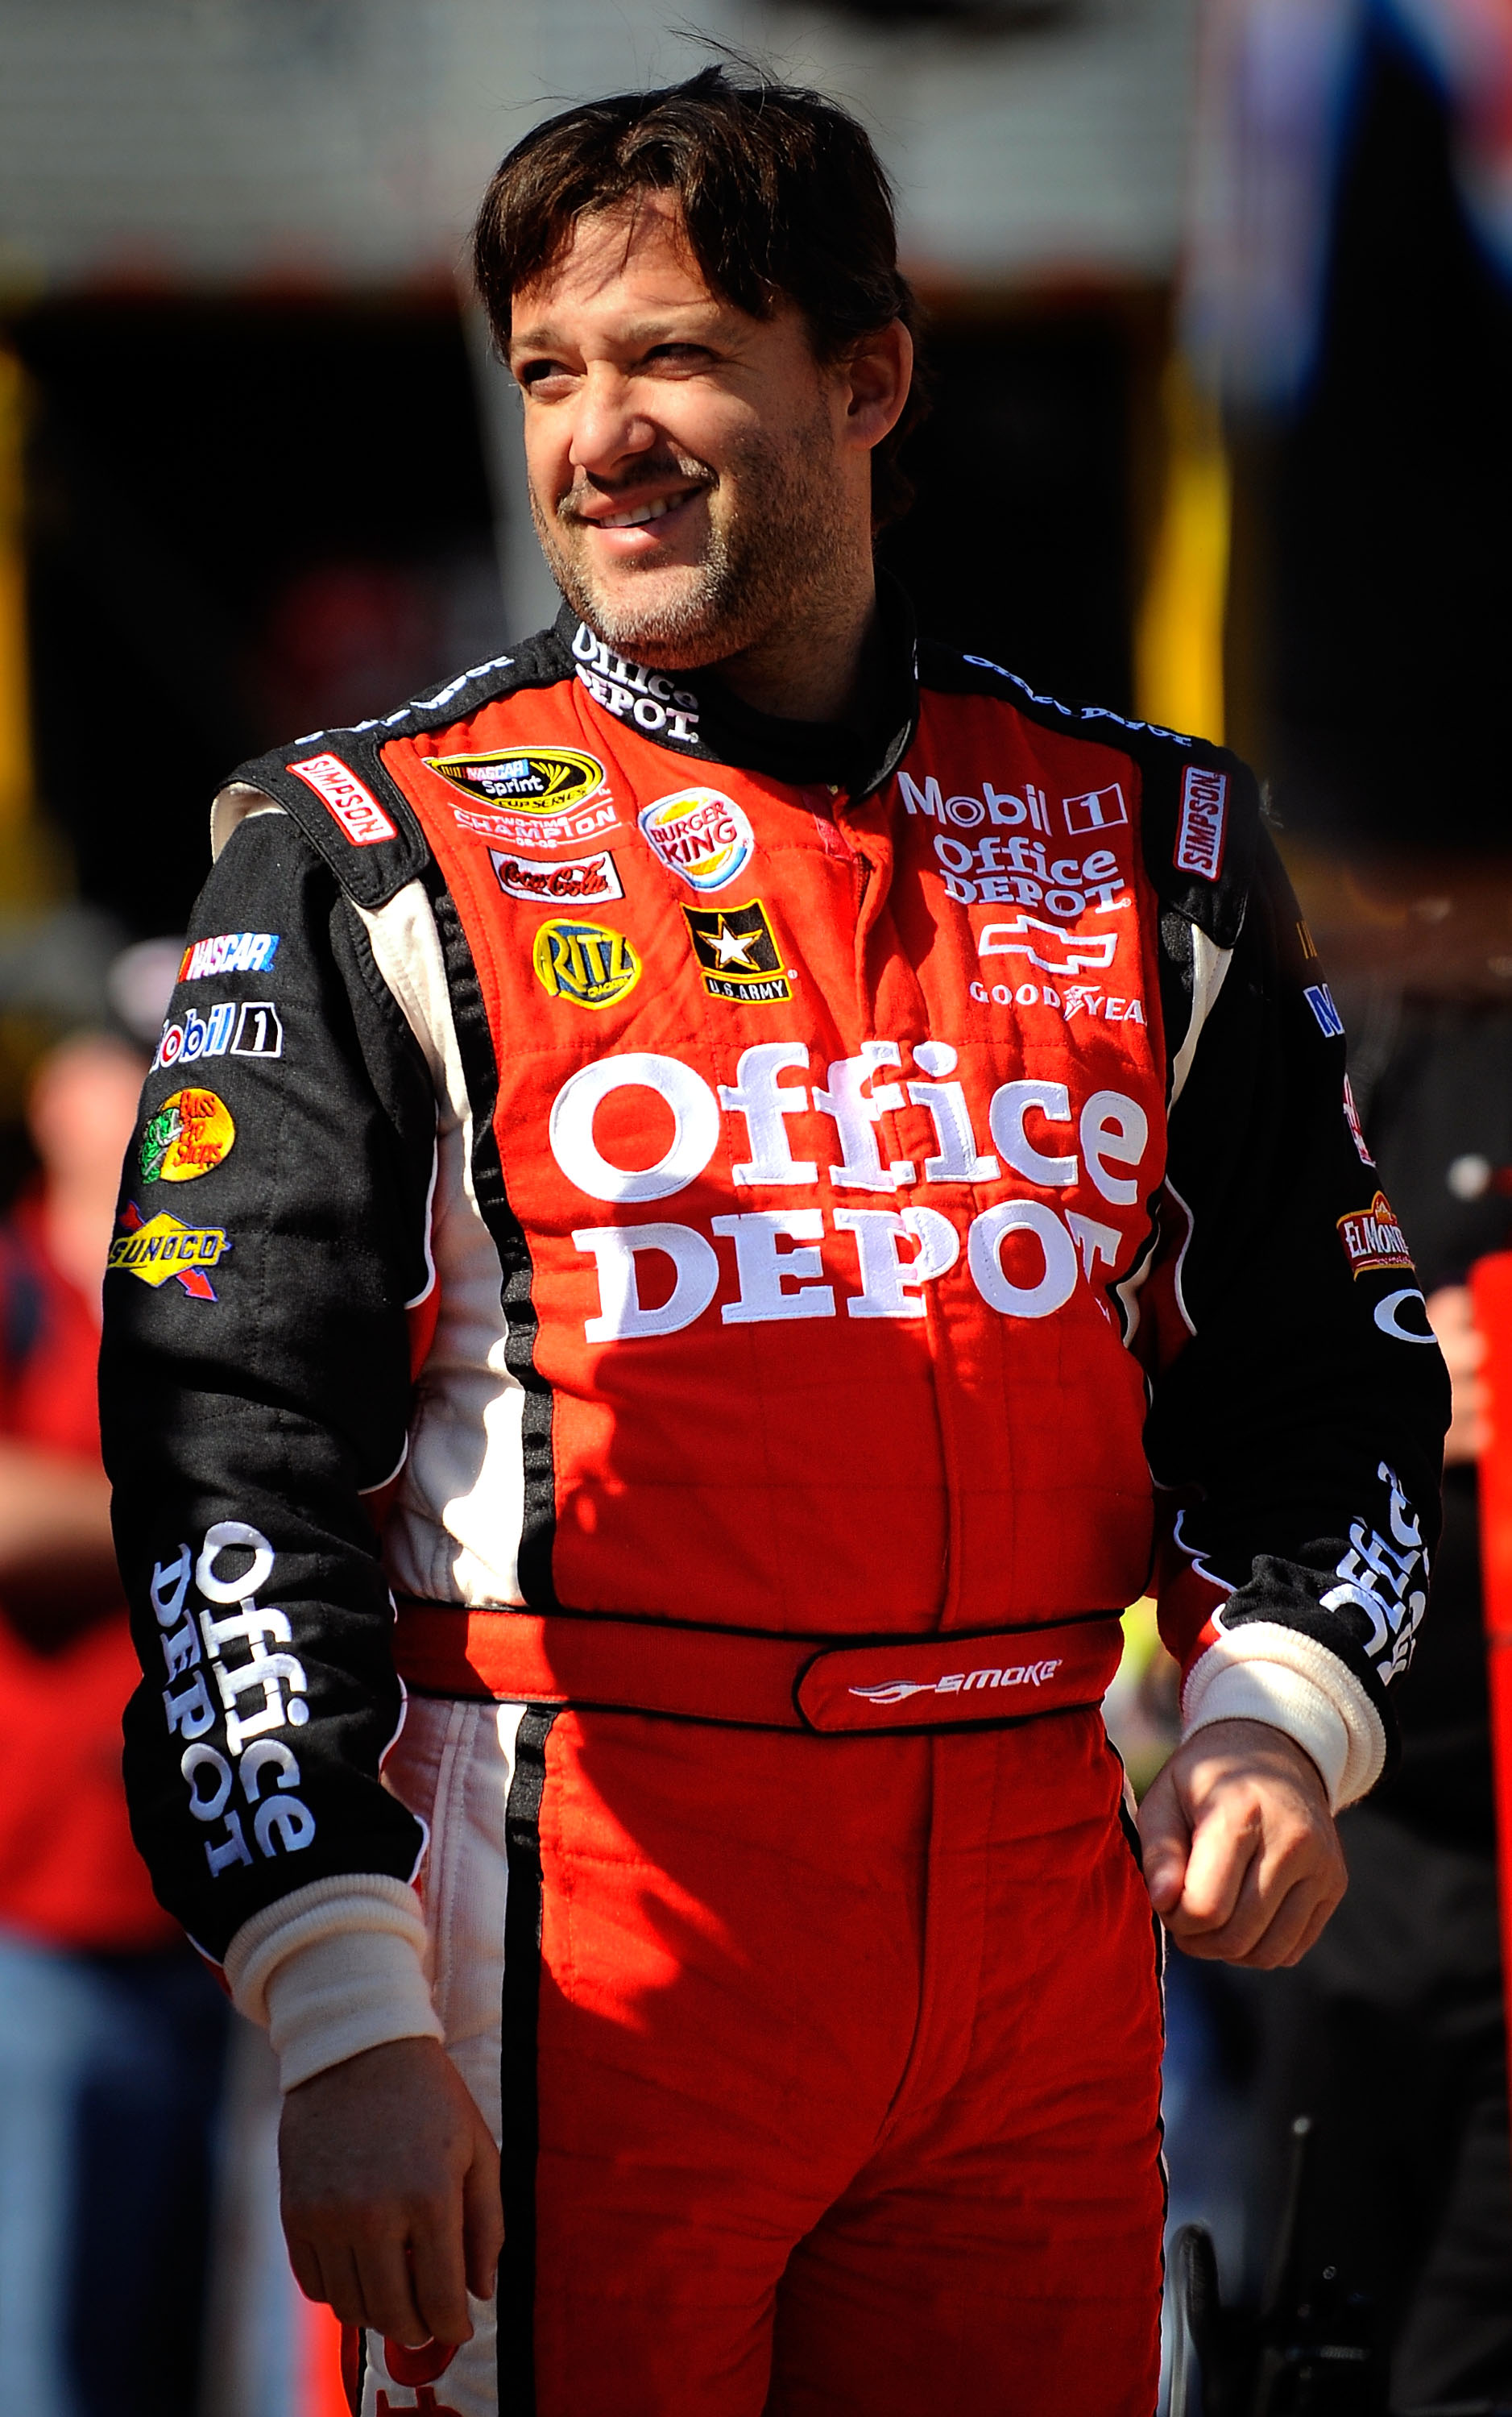 BRISTOL, TN - MARCH 19:  Tony Stewart, driver of the #14 Office Depot/Mobil 1 Chevrolet, walks in the garage area during practice for the NASCAR Sprint Cup Series Jeff Byrd 500 Presented By Food City at Bristol Motor Speedway on March 19, 2011 in Bristol,